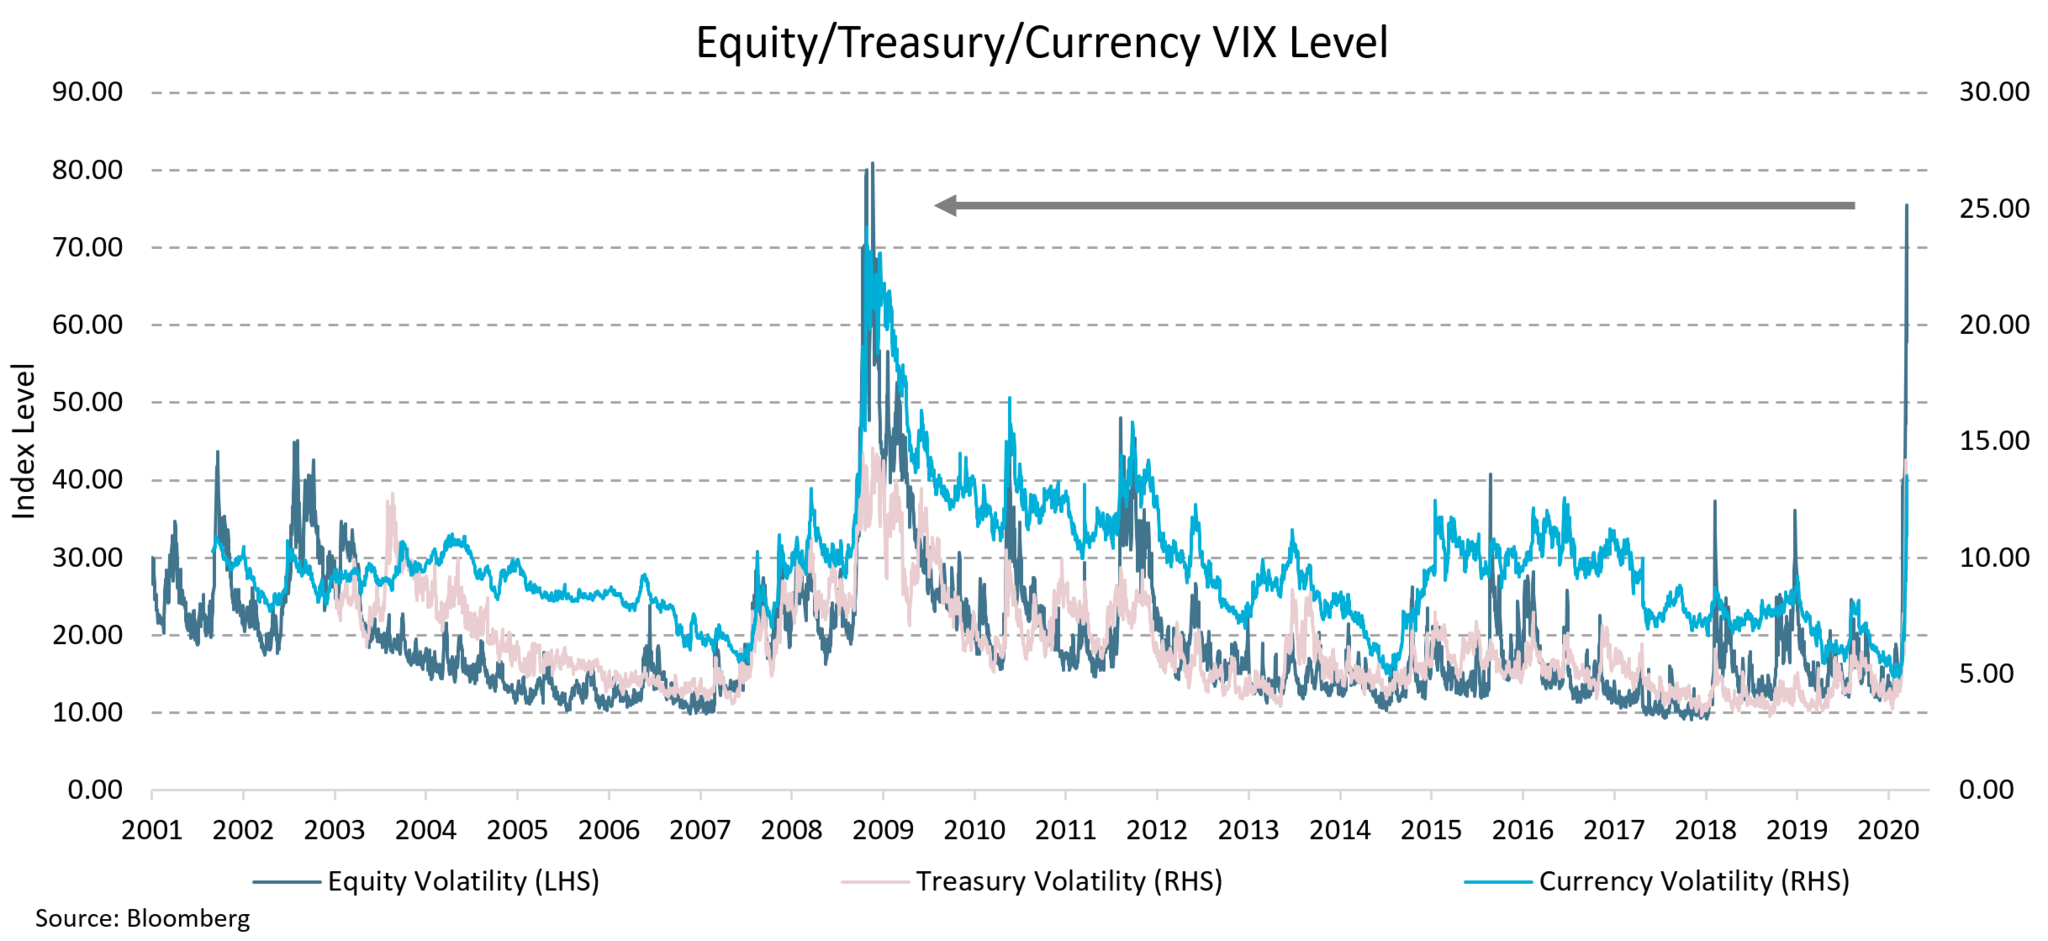 This chart shows the elevated degree of market volatility for Equity, Treasury and Currency markets which have hit levels not seen since the Global Financial Crisis. As at 13 March the Equity market hit 74, which is just short of the GFC high of 84.